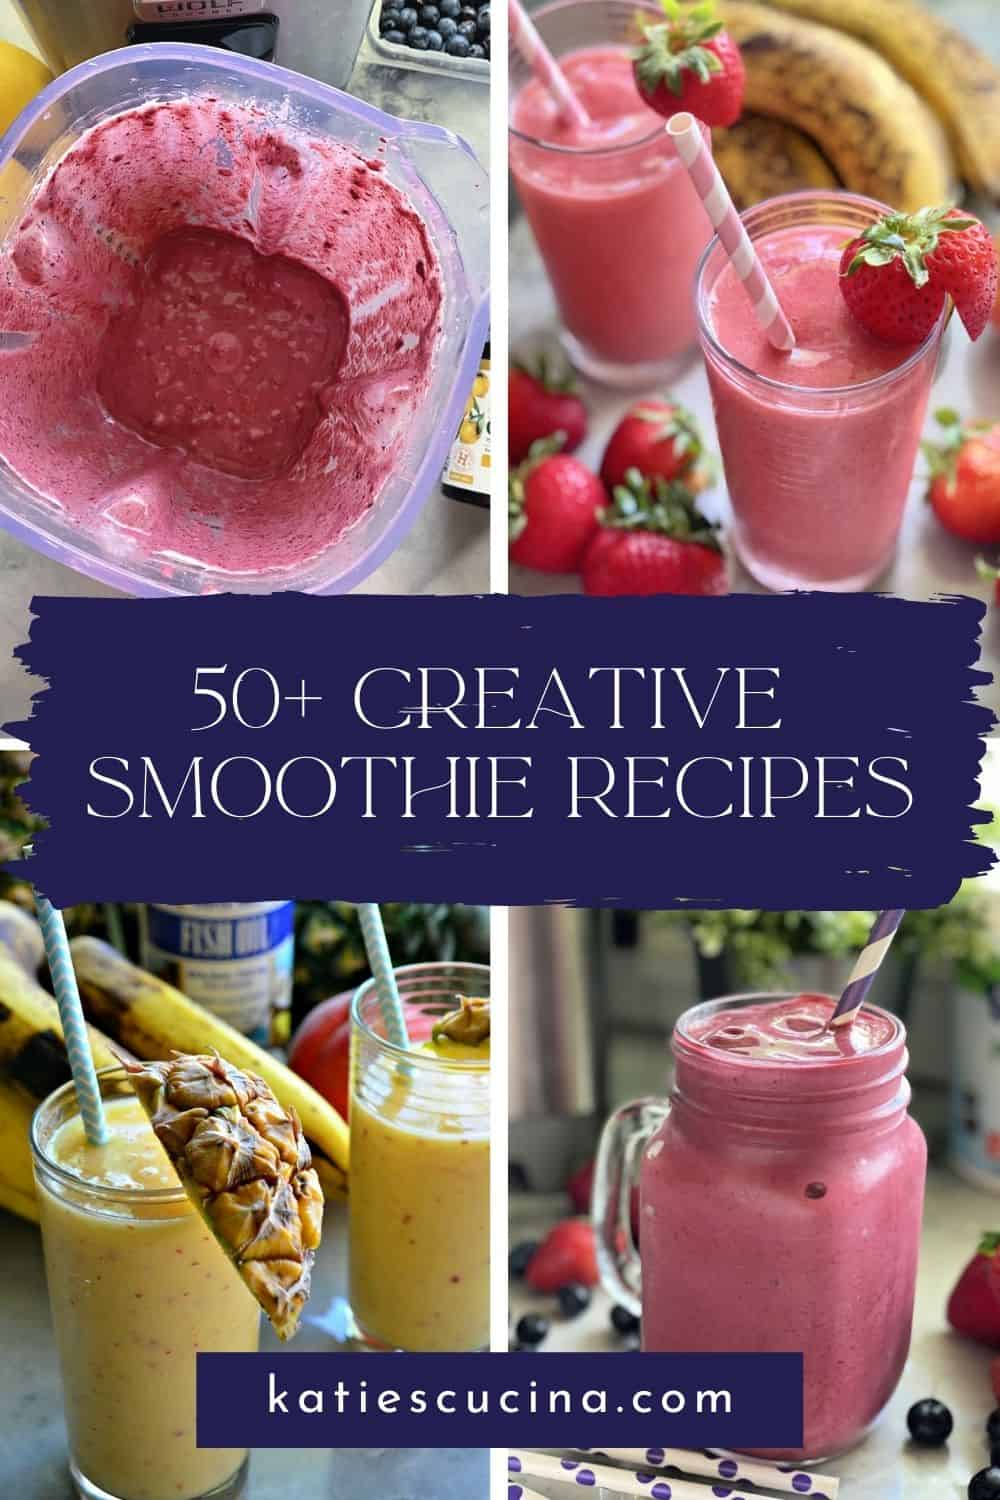 Four photos of bright colored smoothies with text on image for Pinterest.